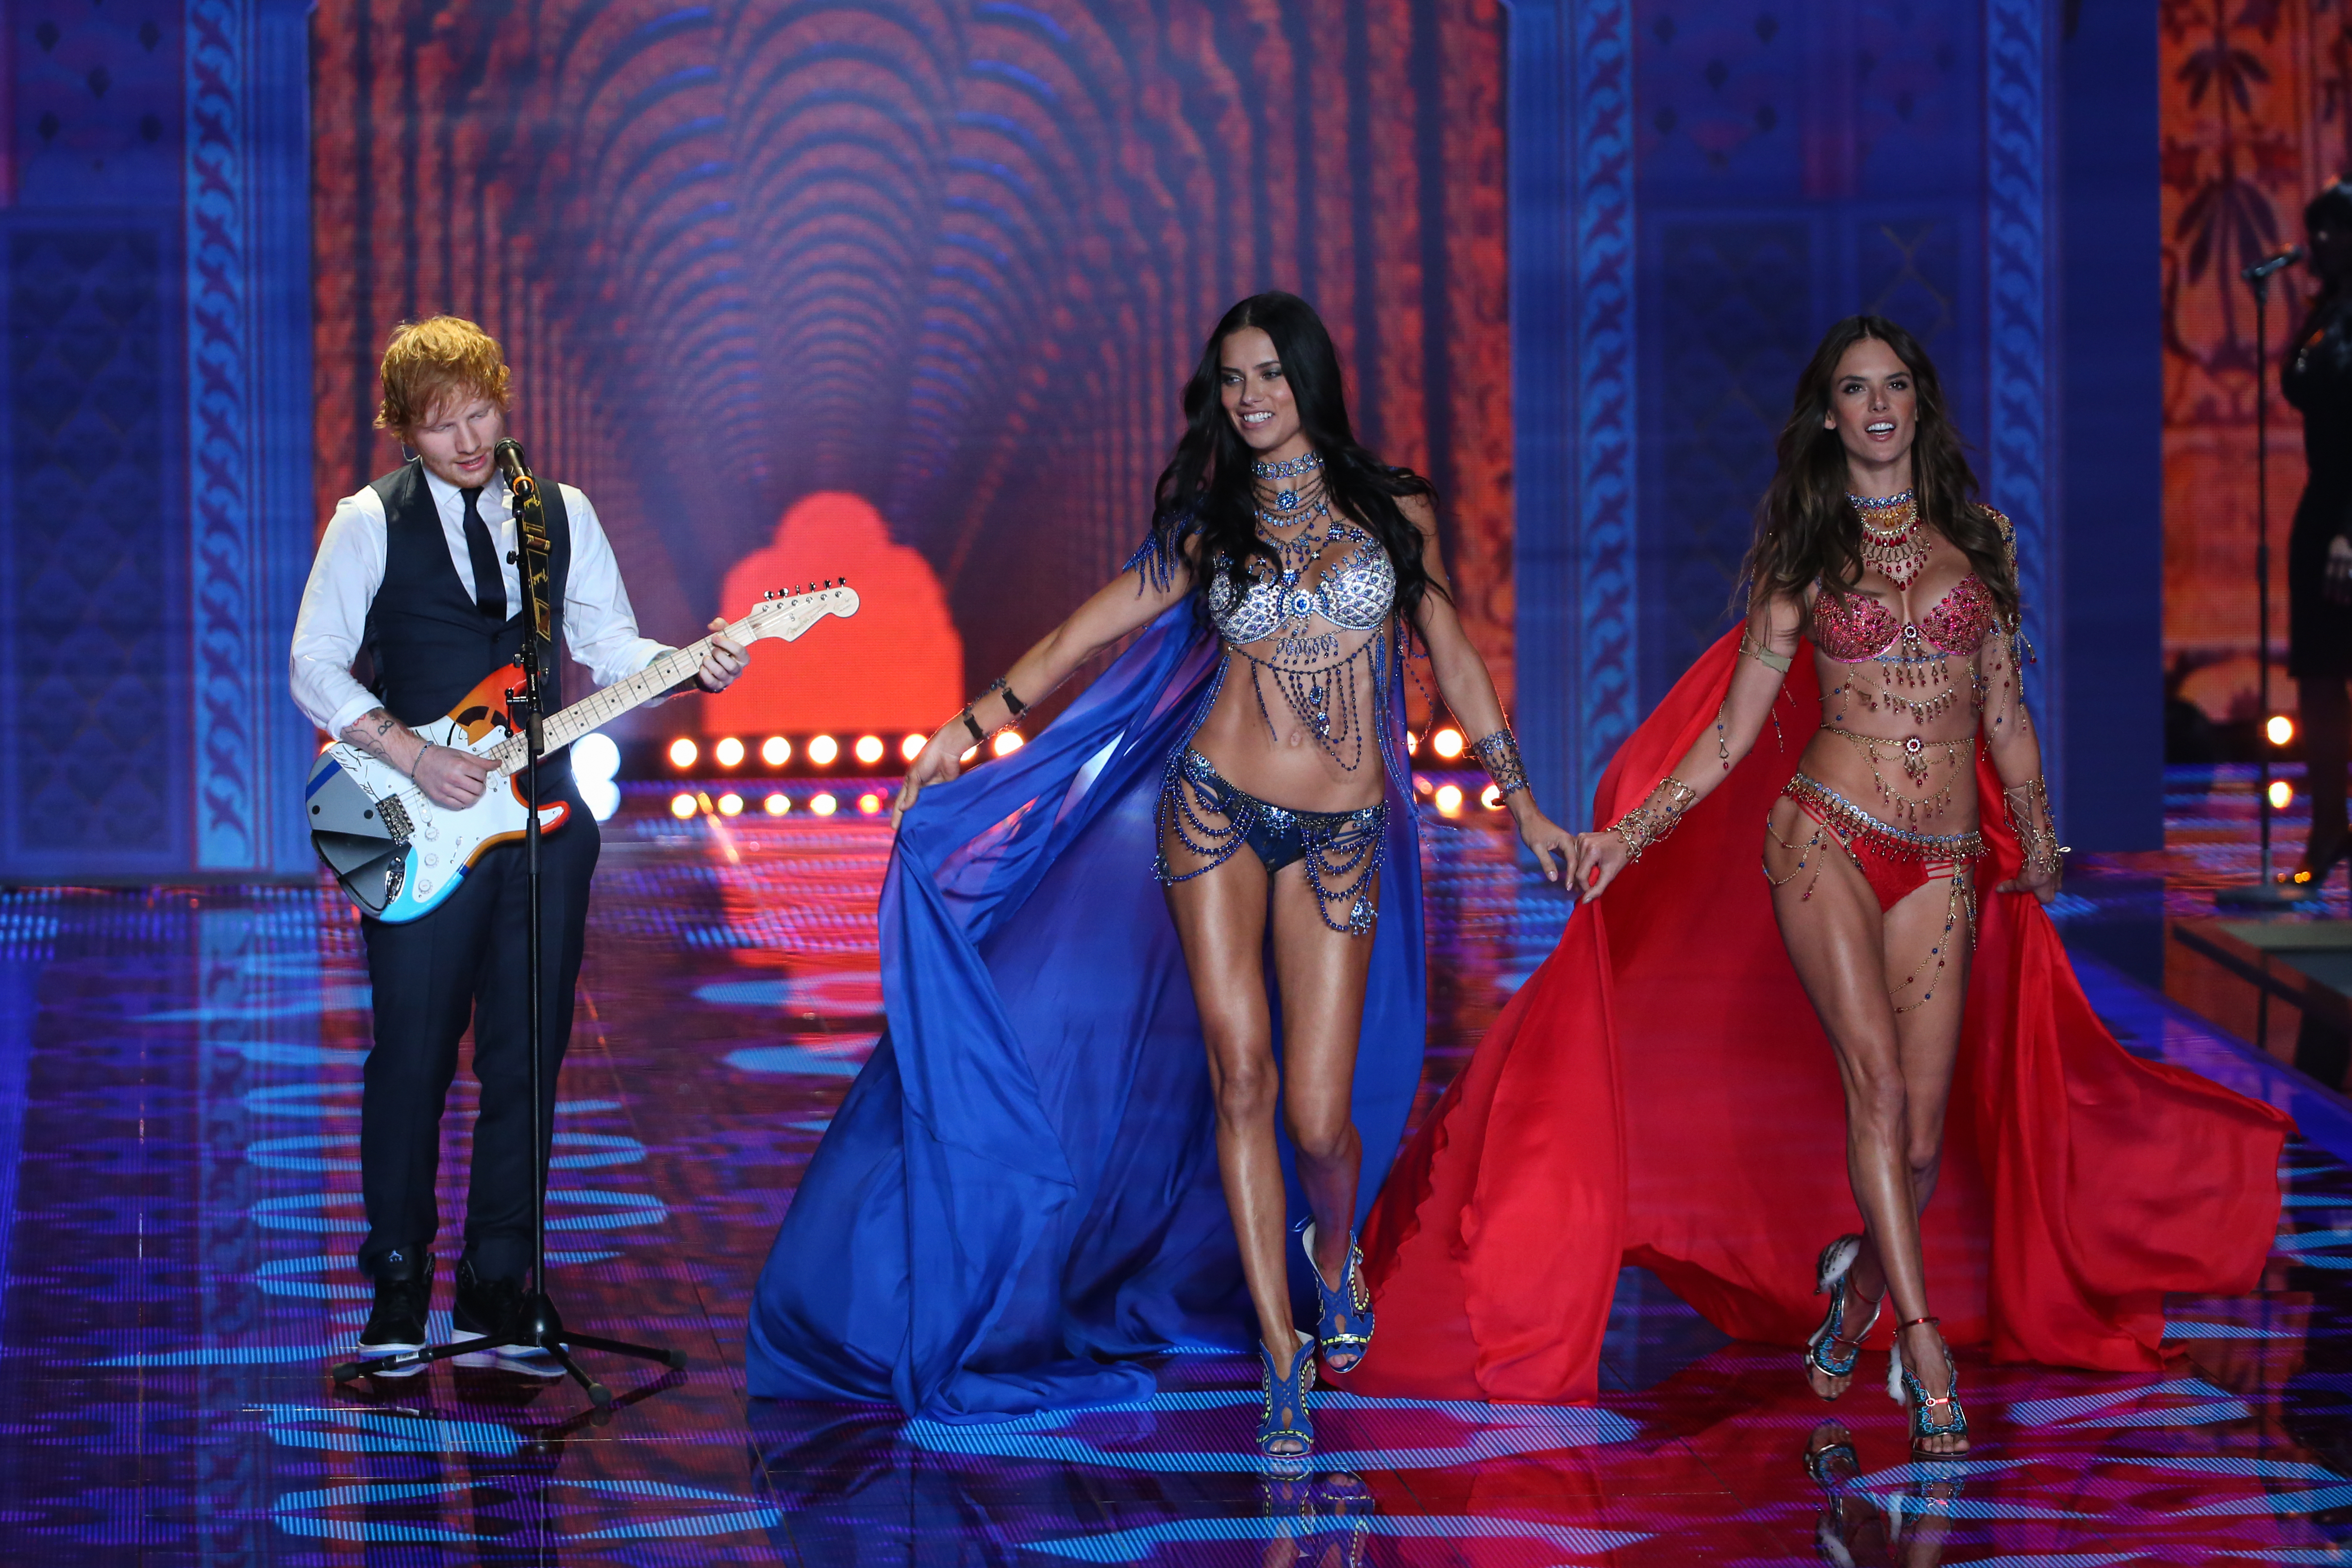 Ed Sheeran Performs As Victoria's Secret Lingerie Models Adriana Lima And Alessandra Ambrosio Walk The Fashion Runway At The Annual Victoria's Secret Fashion Show At Earls Court In London, England, United Kingdom.